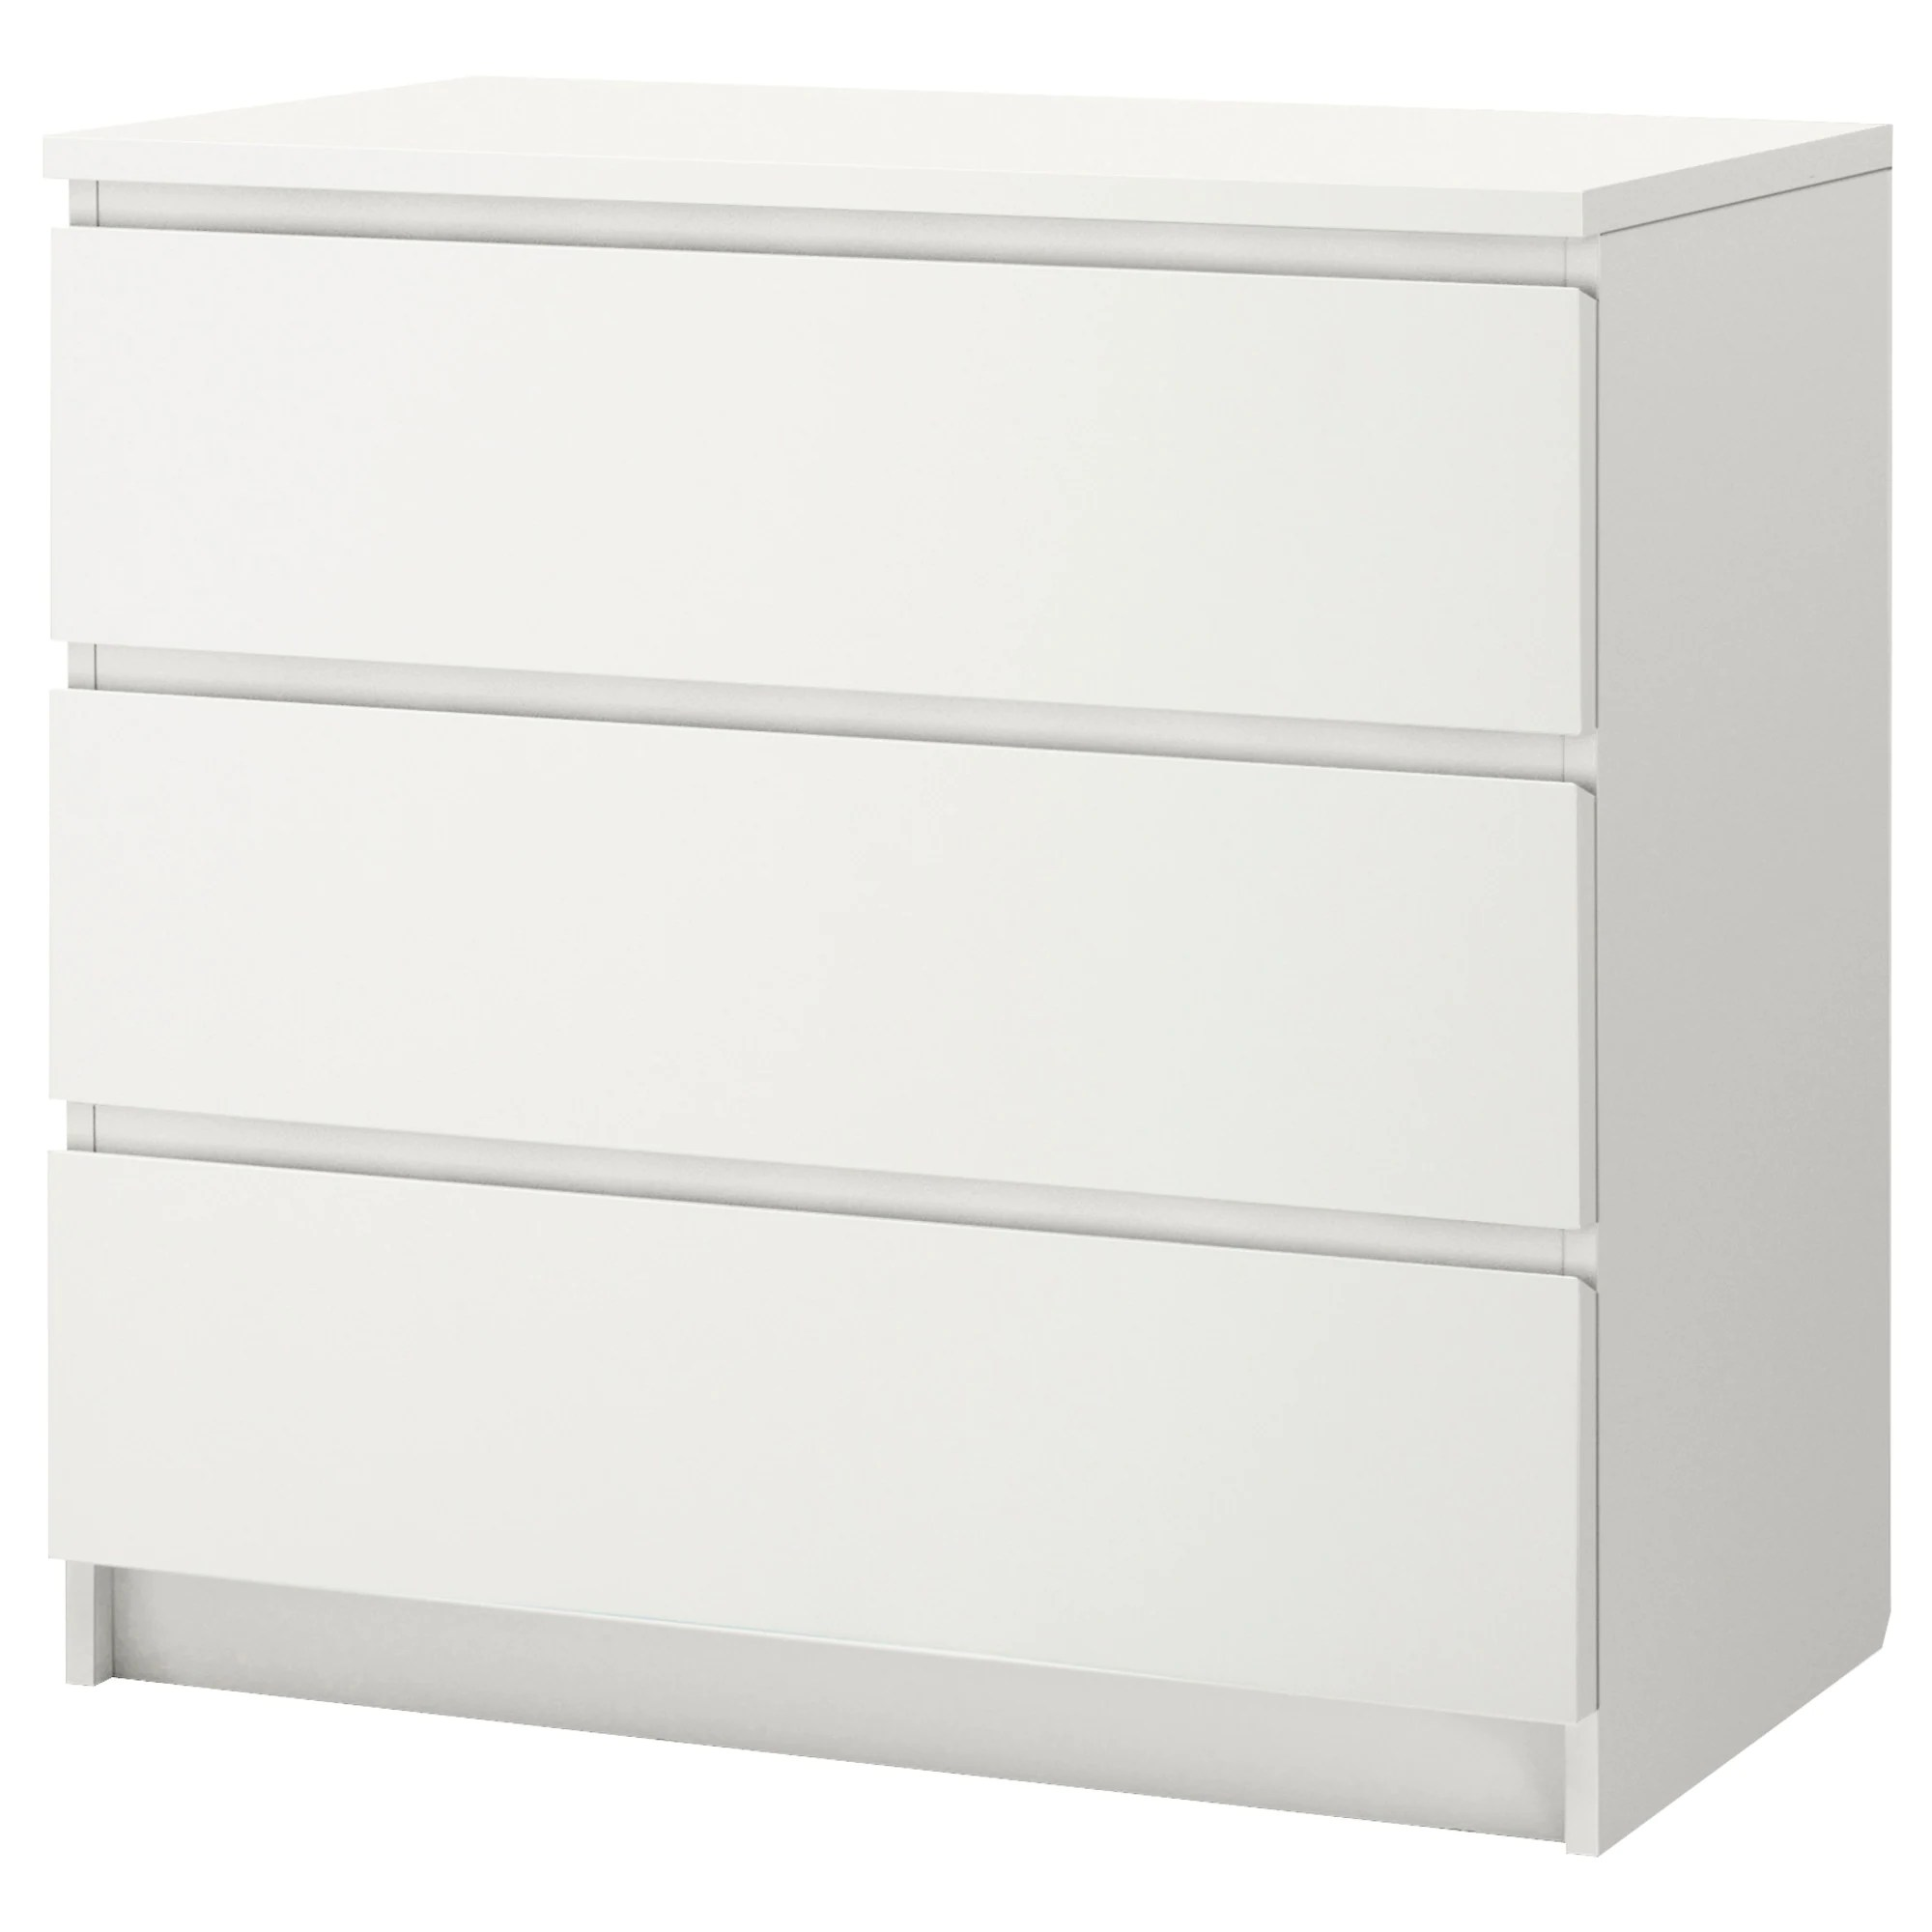 Meubles Ikea France Sas Malm Commode 3 Tiroirs Blanc